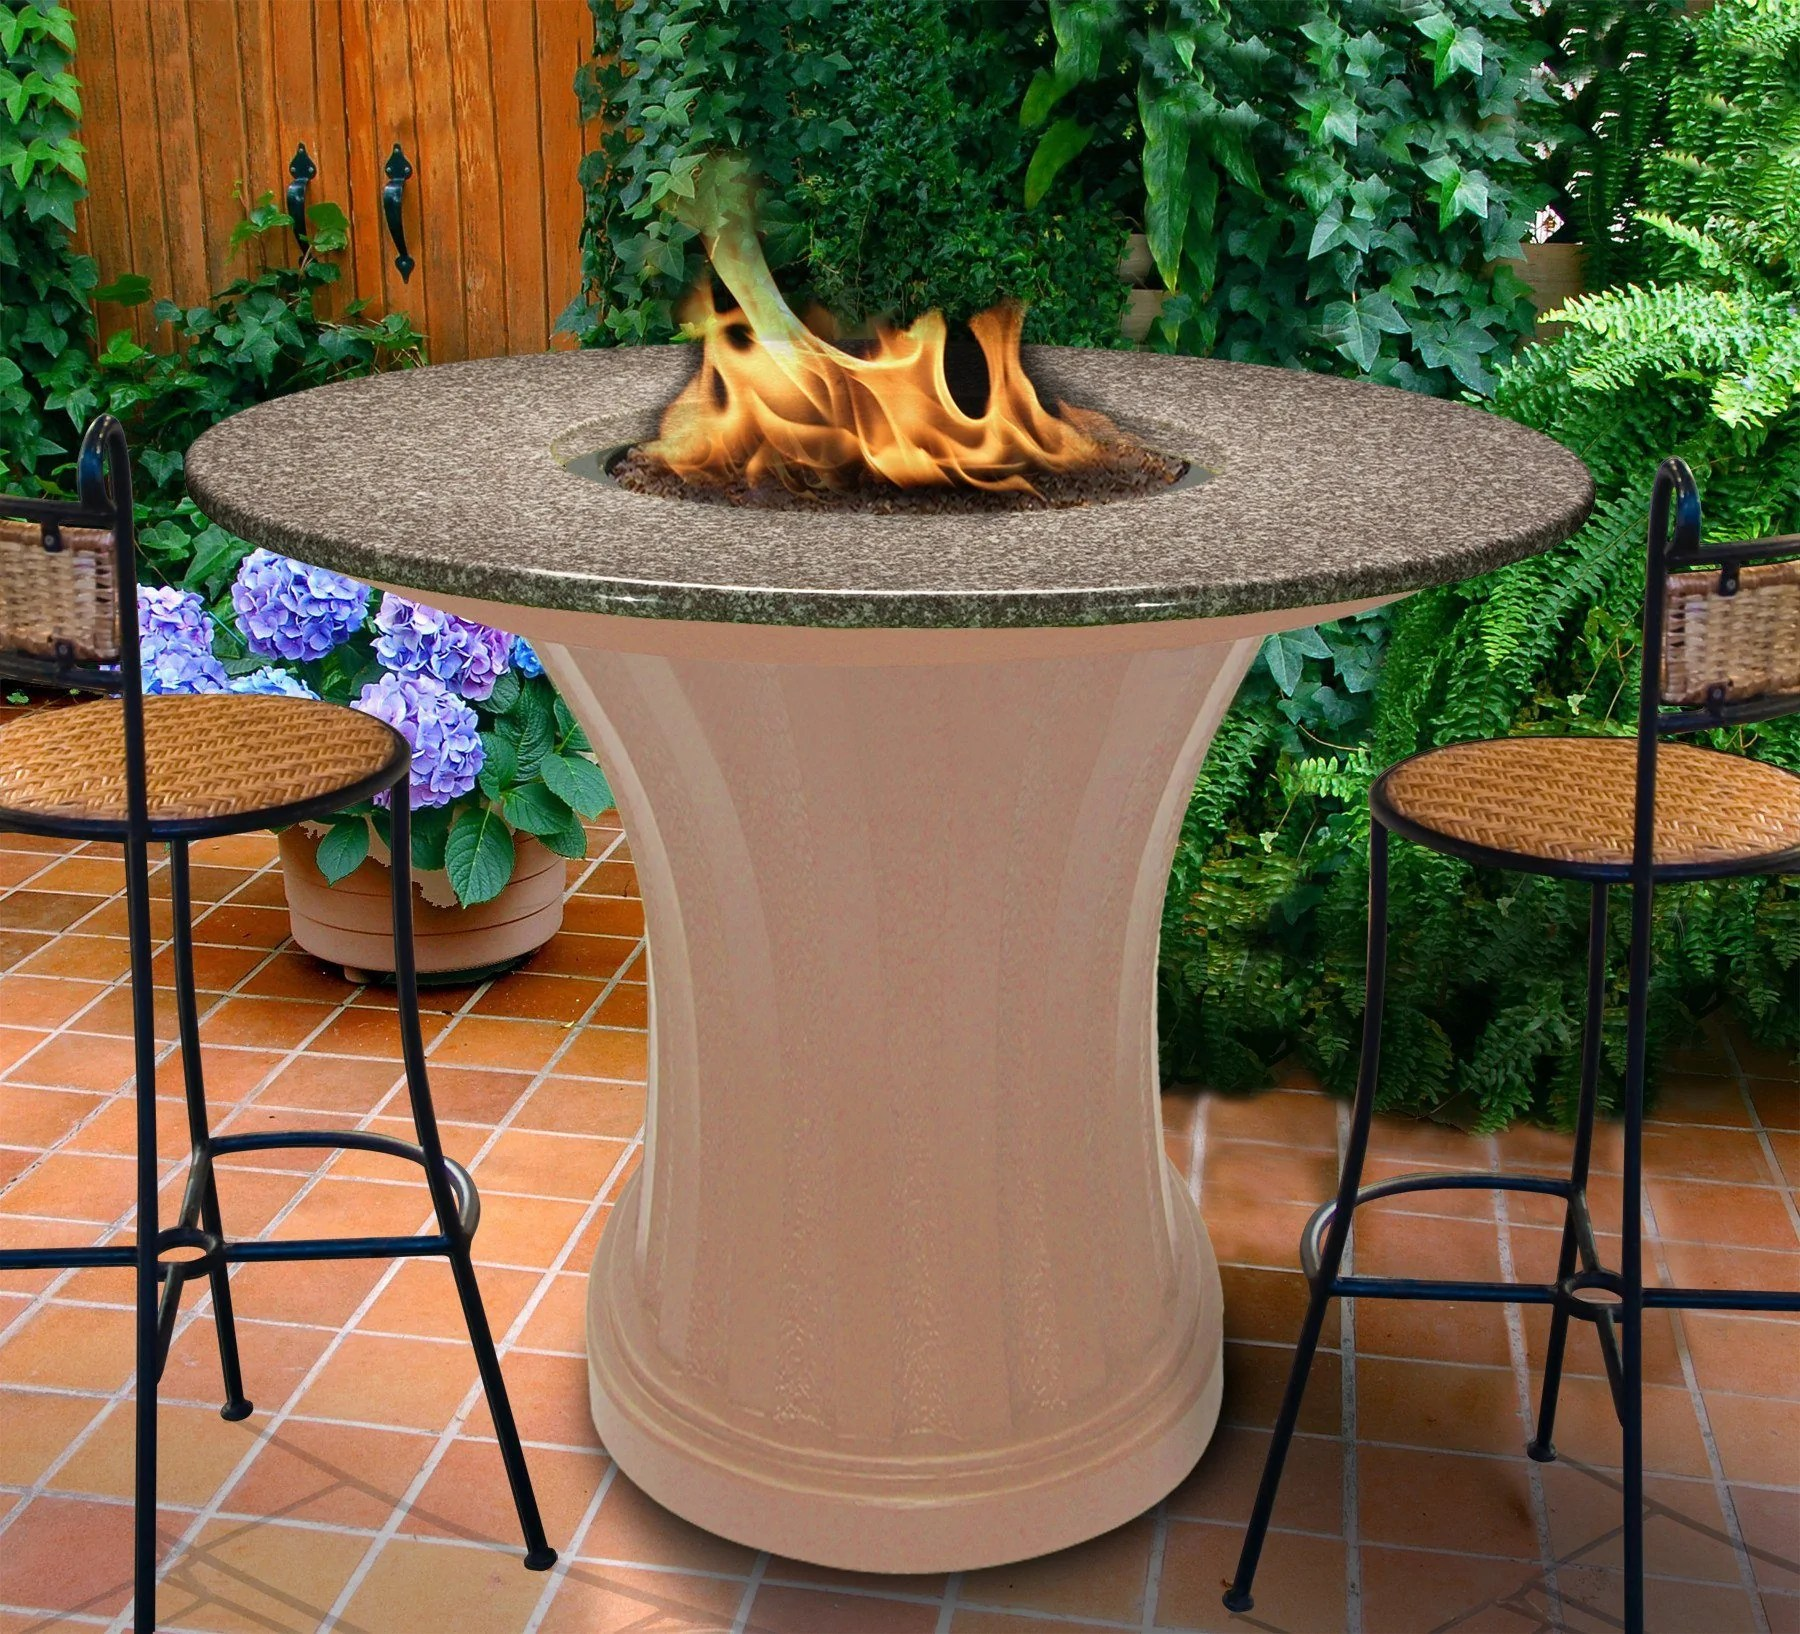 Fanciful Fire Pit Table Rodeo Balcony Height Fire Pit Table Rodeo Balcony Height Fire Pit Table Fire Pit Plaza Propane Fire Pit Table Target Propane Fire Pit Table Lowes houzz-03 Propane Fire Pit Table